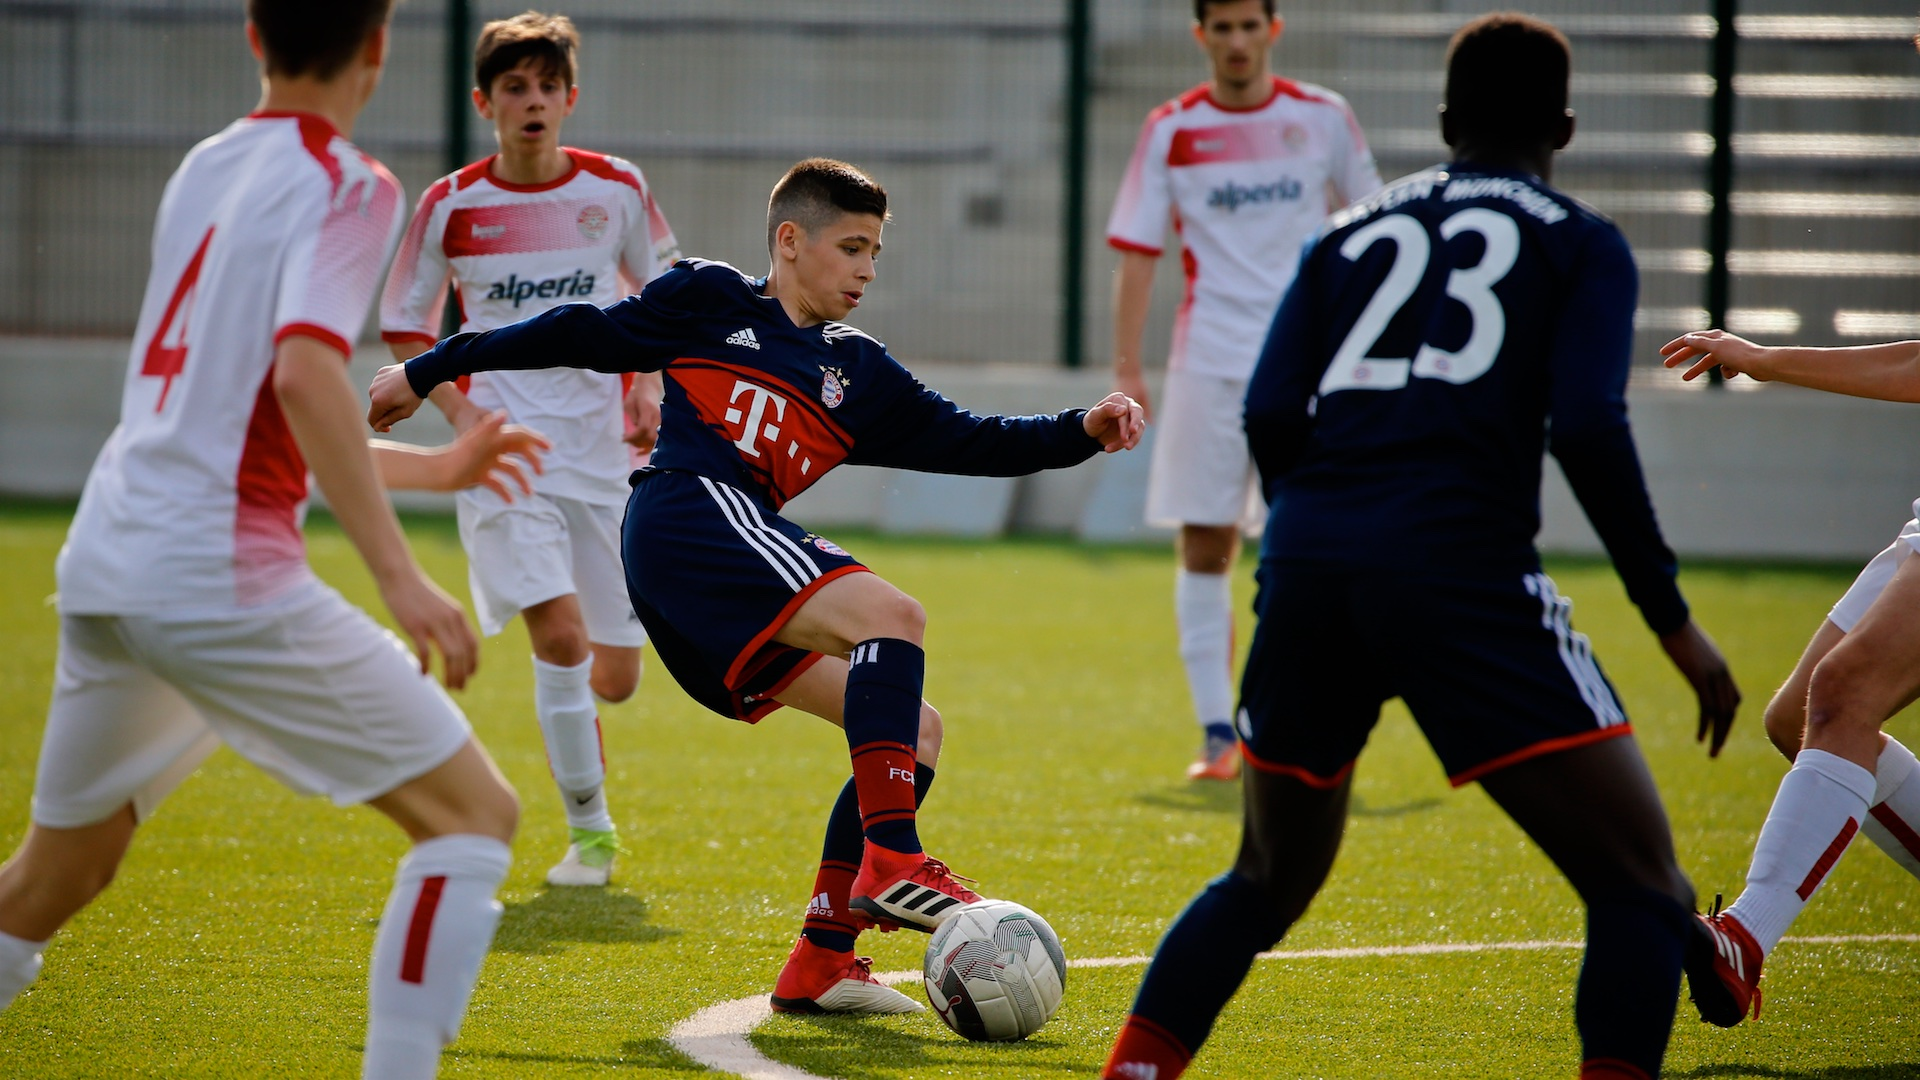 Bayern Munich Under-15 Boys